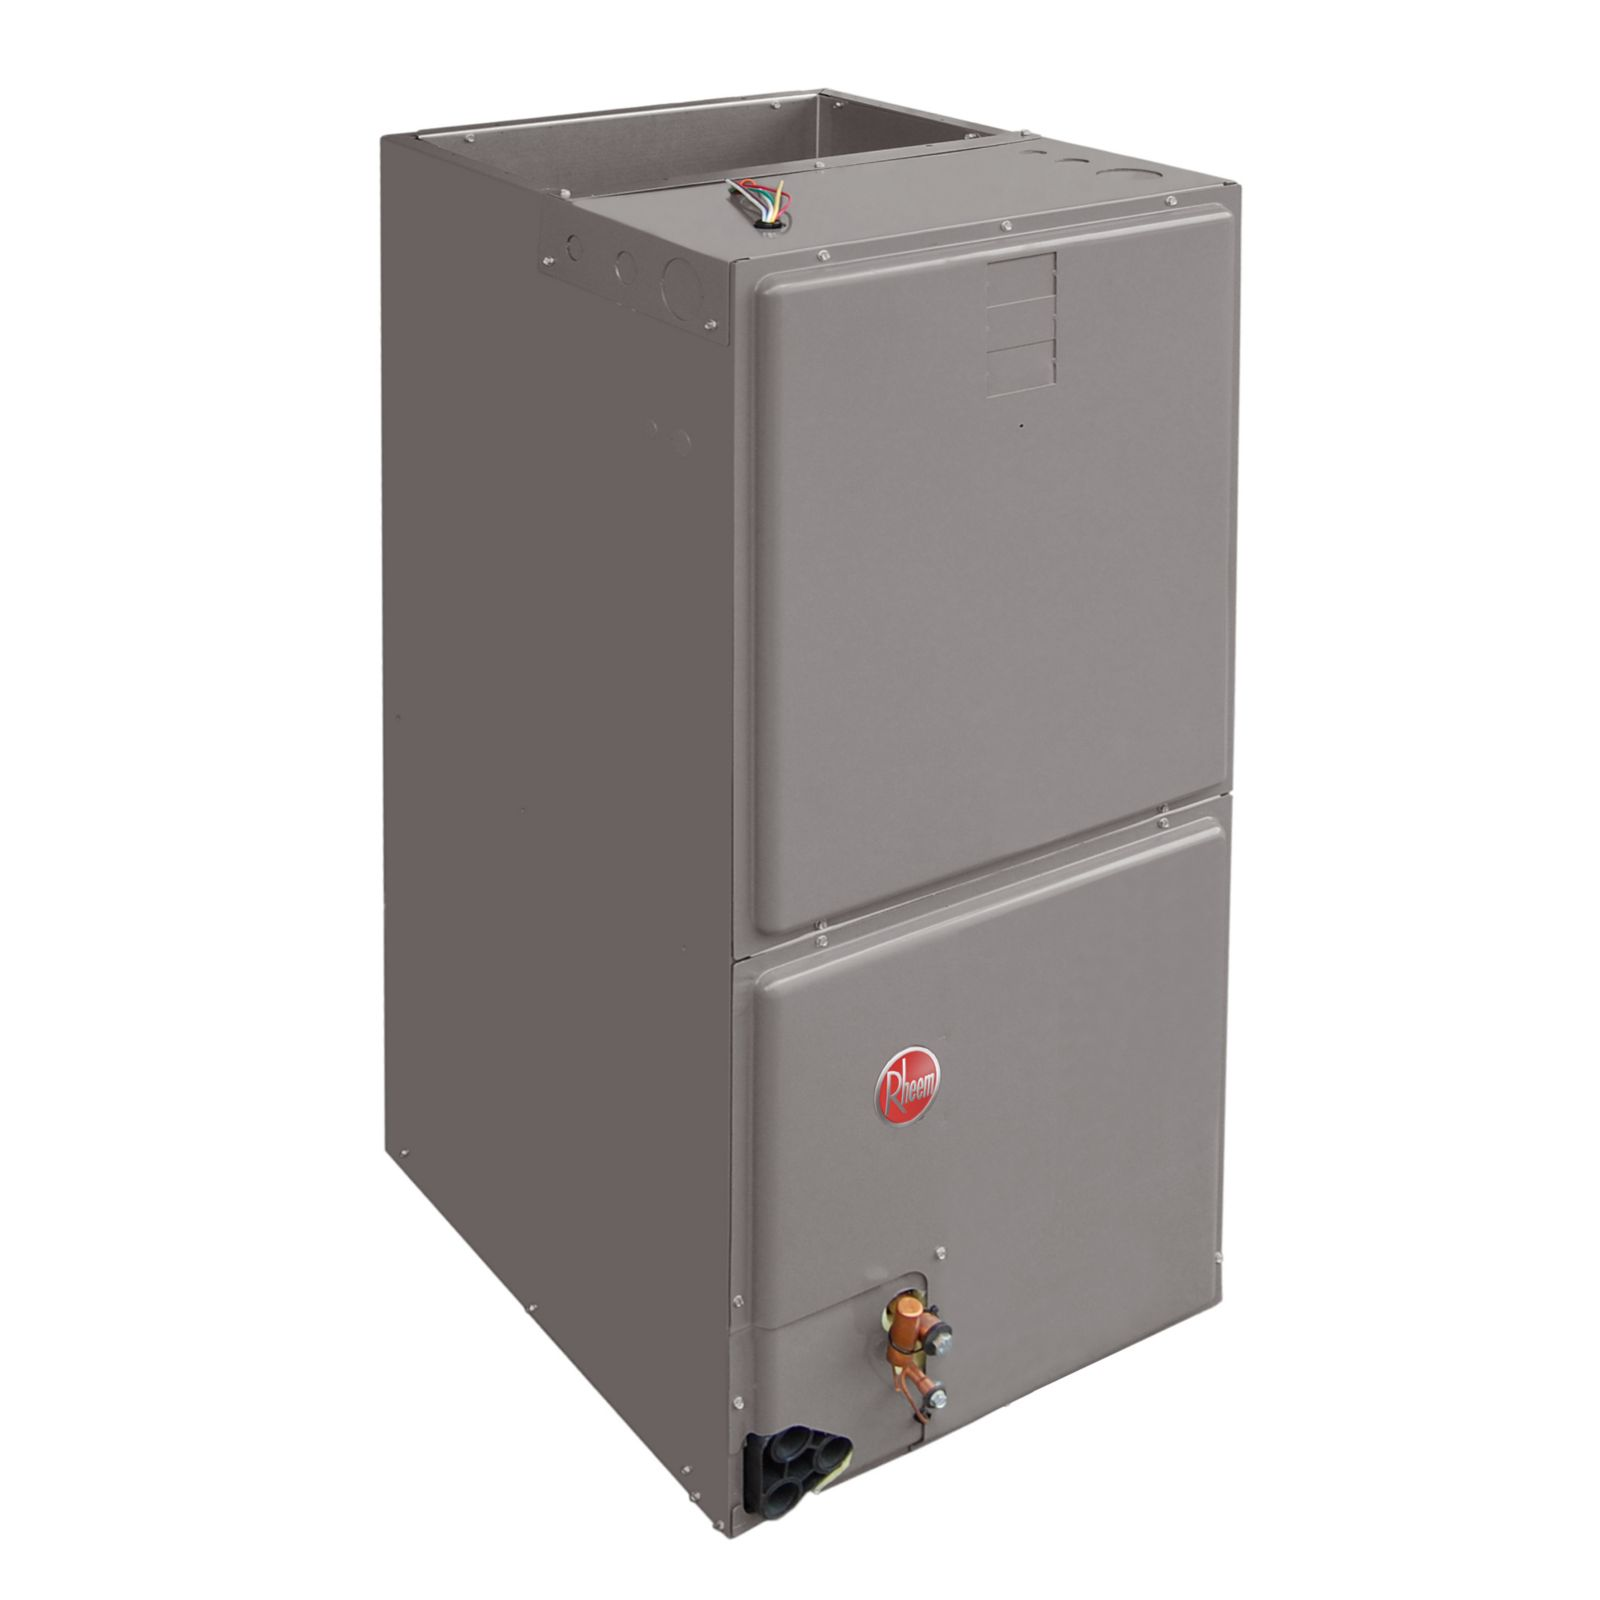 Rheem RH1P1817STANJA - RH1P- Series, 1 1/2 Ton, R-410A, Single Stage, Aluminum Air Handler, PSC Motor, 208/240V, 1 Ph, 60 Hz